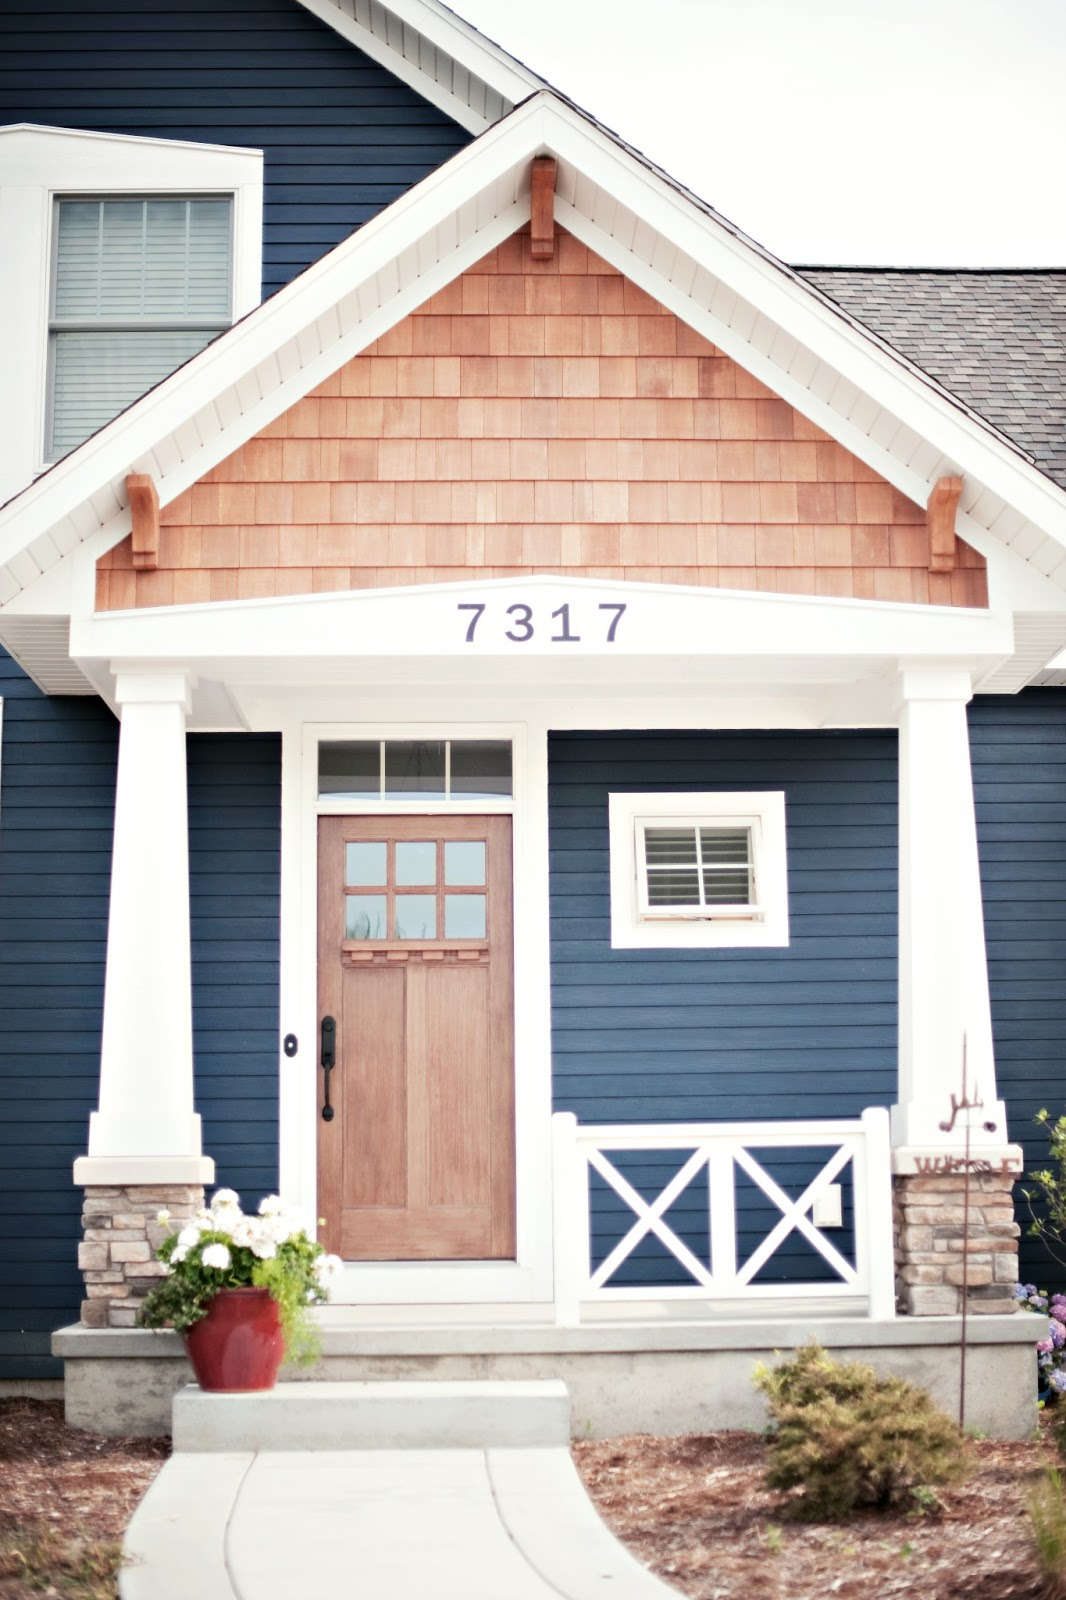 Lisa mende design best navy blue paint colors 8 of my favs for Pictures of painted houses exteriors